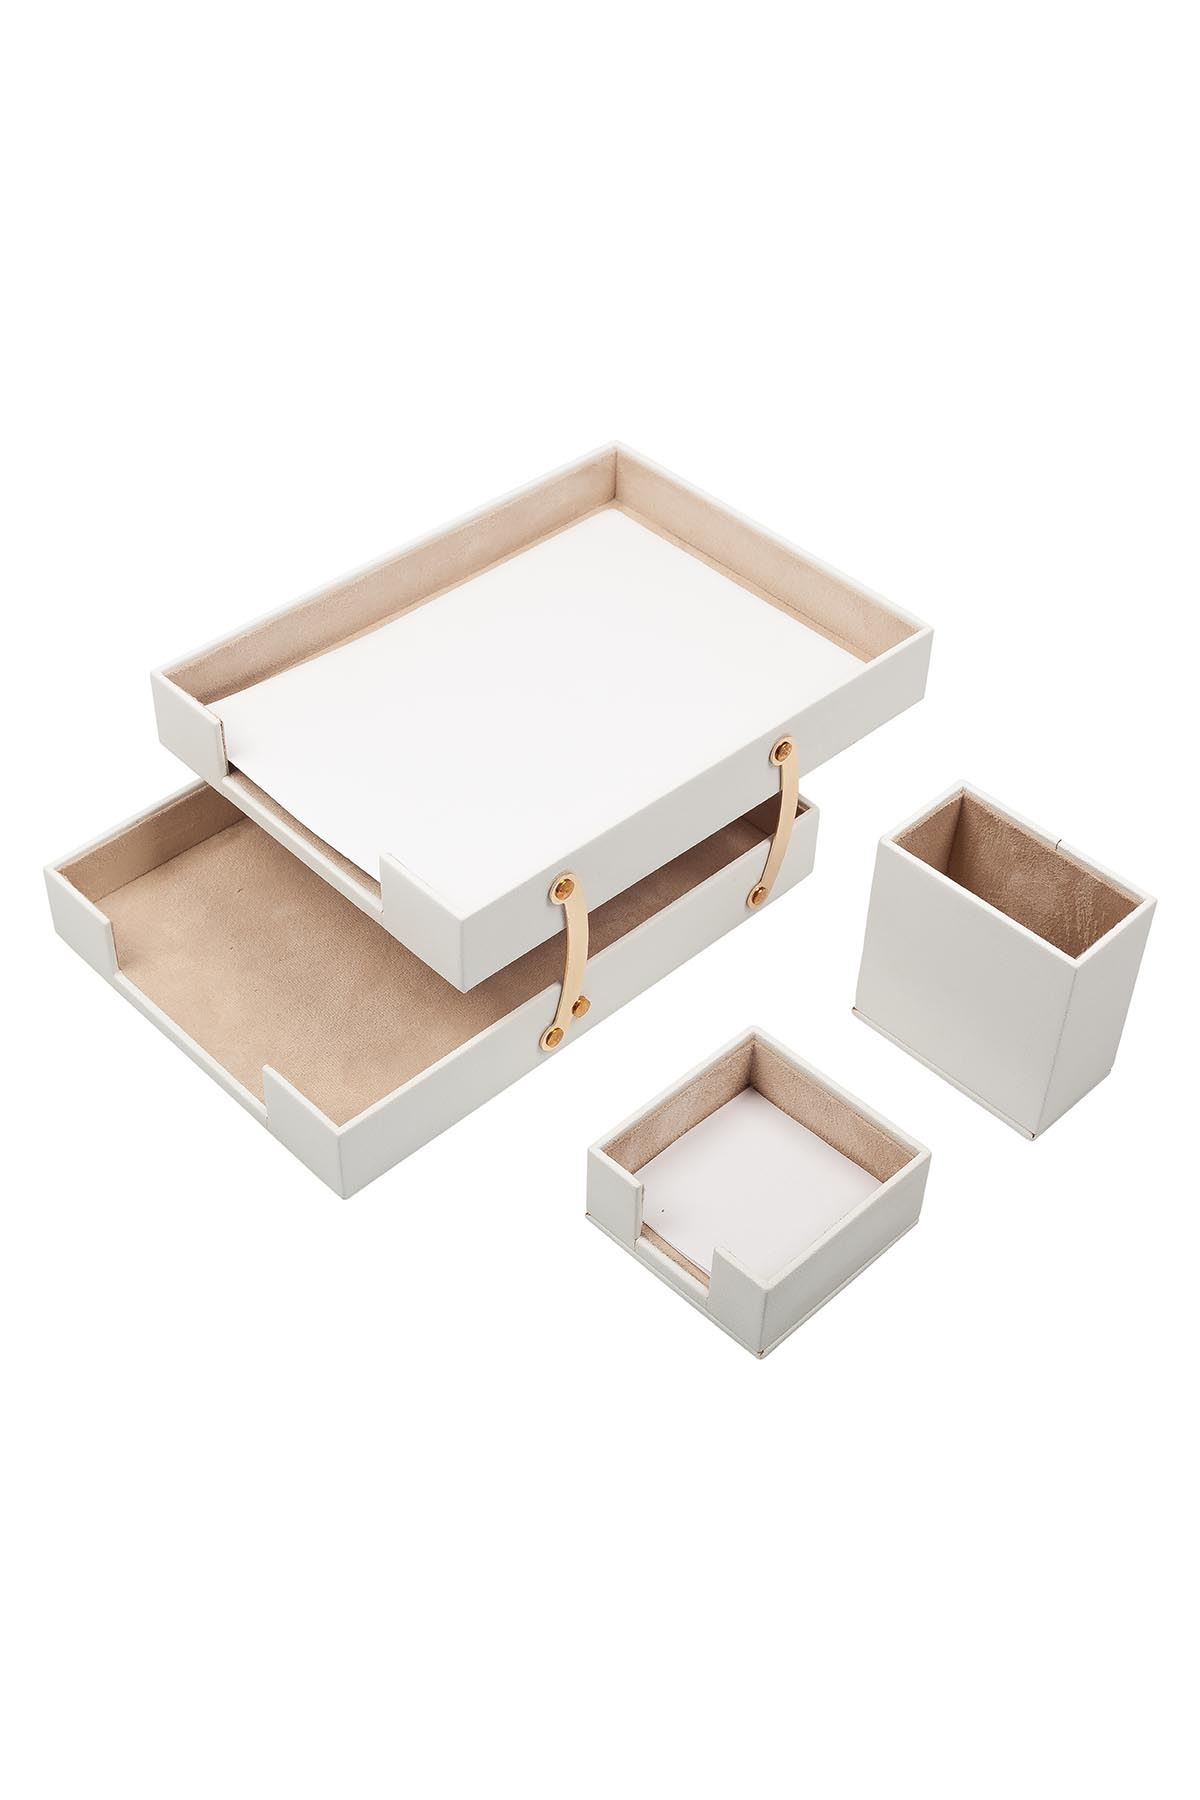 Double Document Tray With 2 Accessories White| Desk Set Accessories | Desktop Accessories | Desk Accessories | Desk Organizers